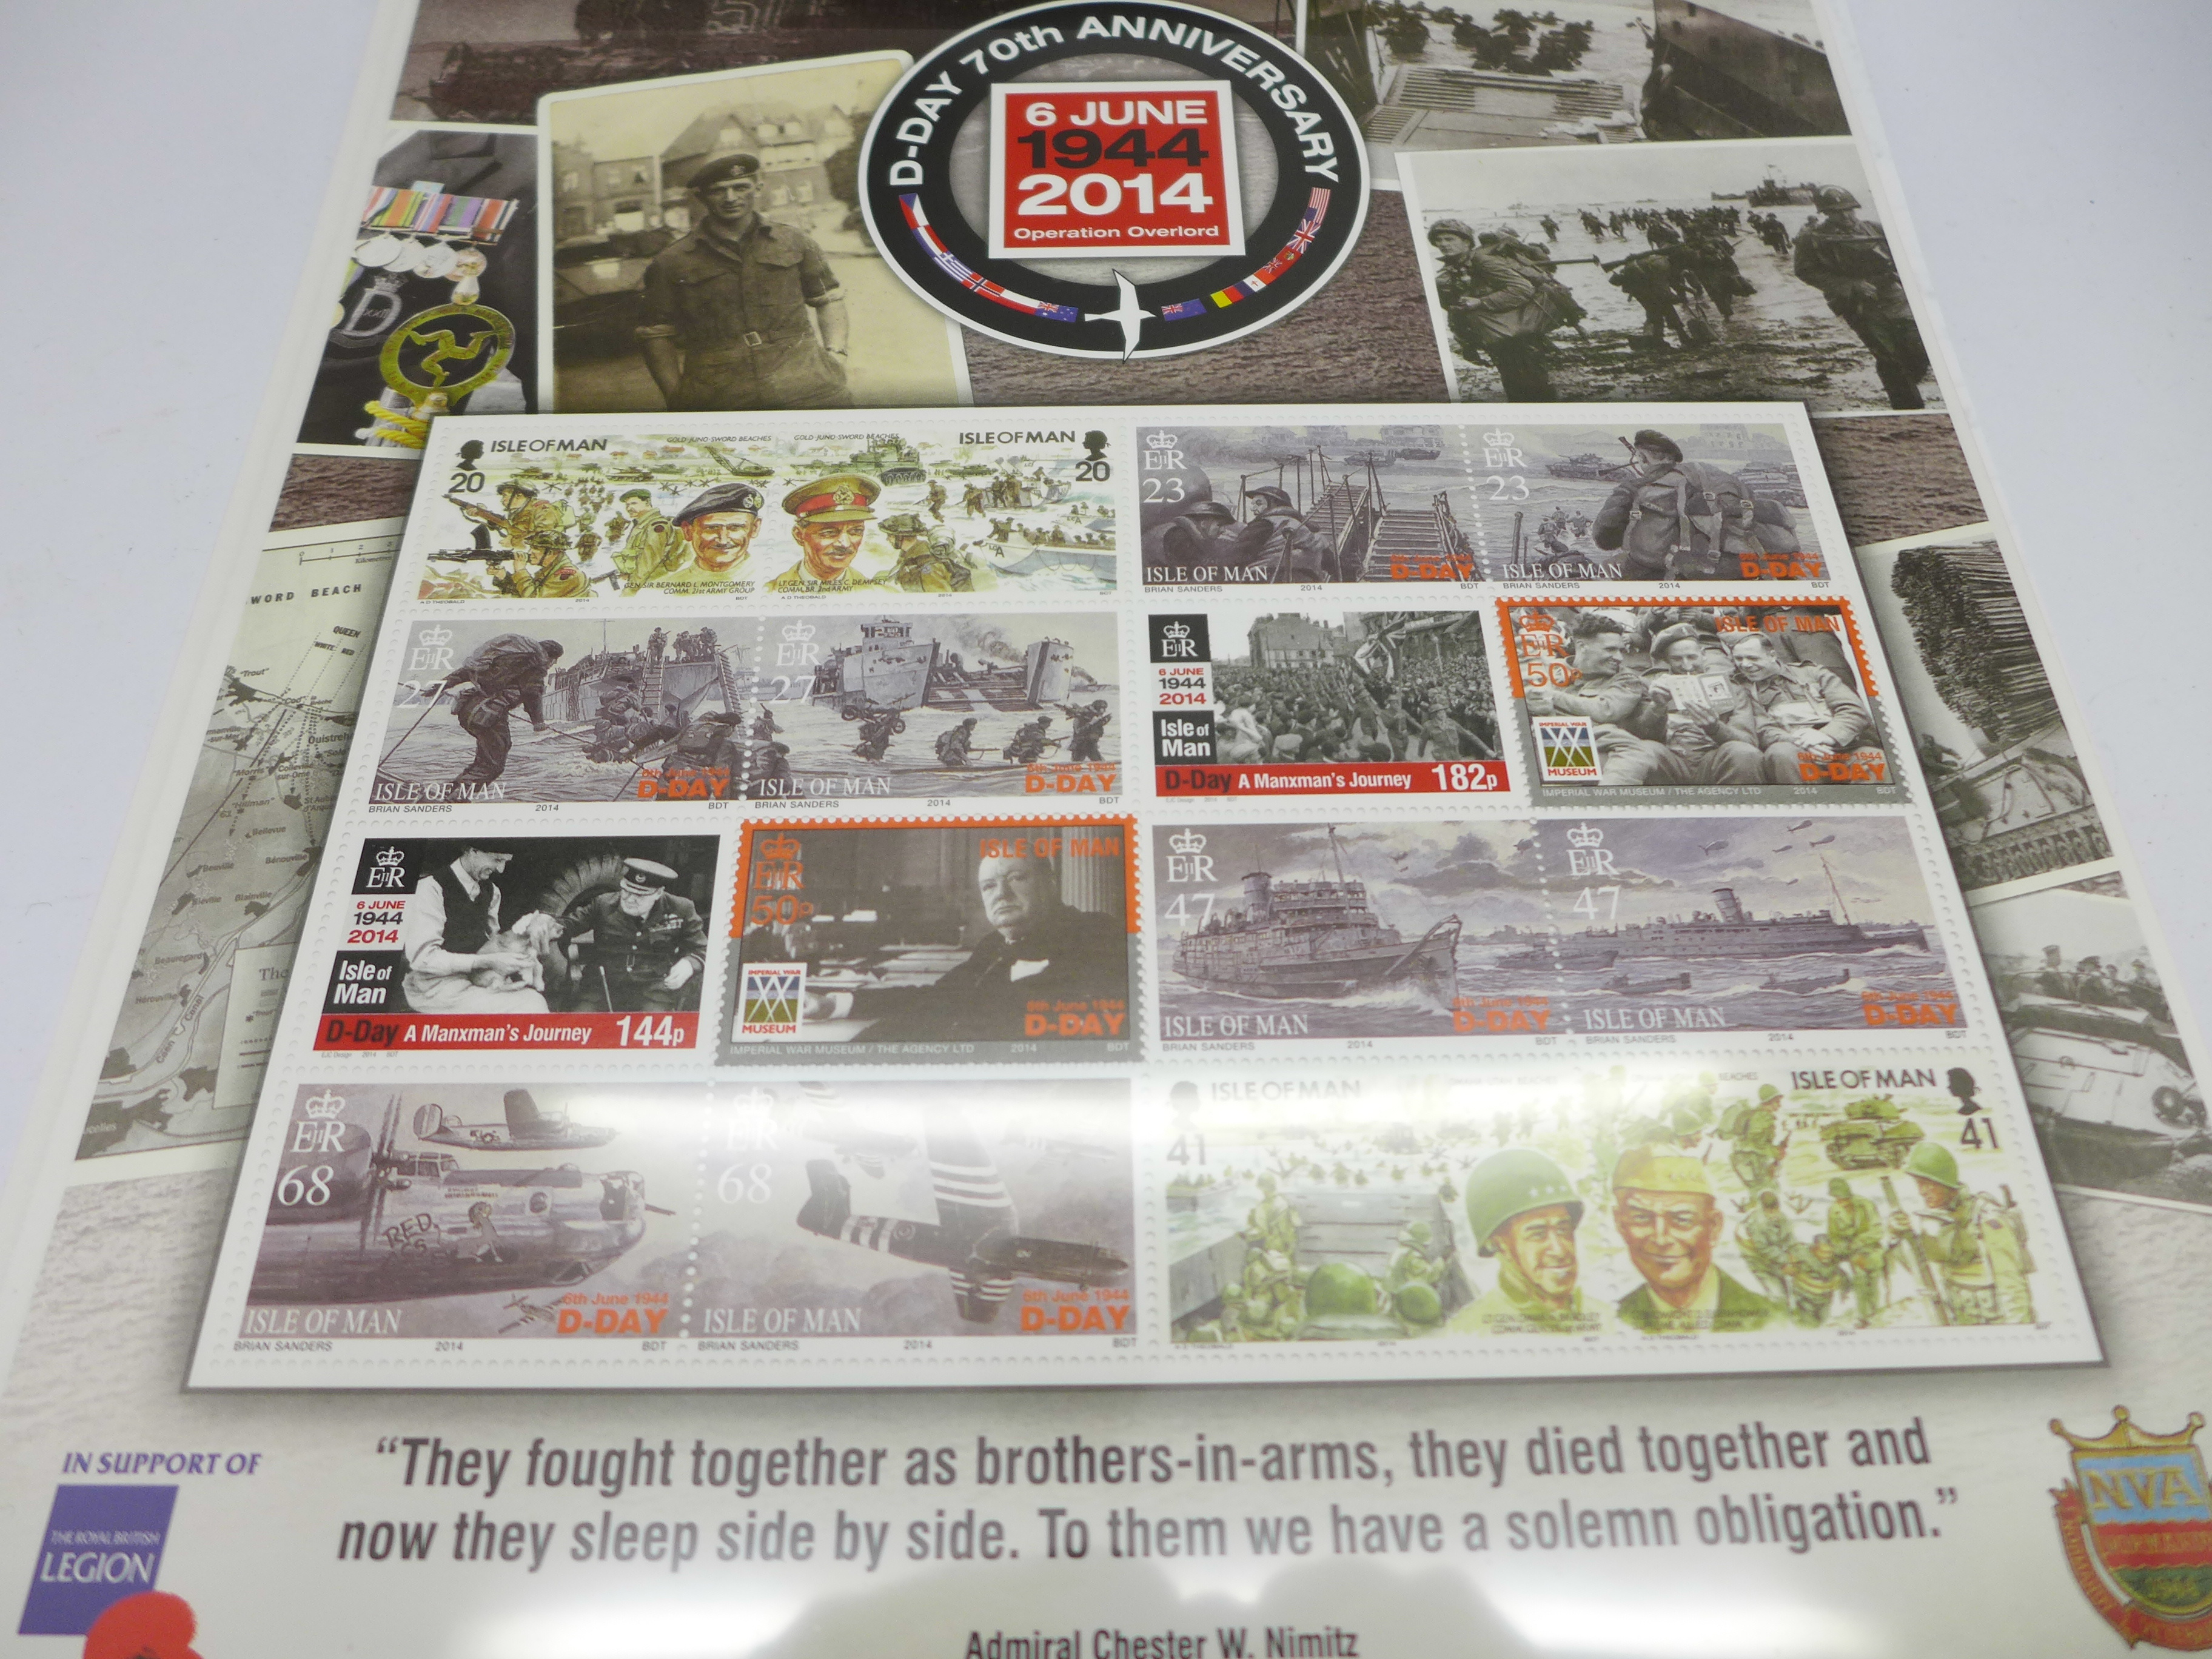 Isle of Man, 2014 D-Day 70th Anniversary 6th June 1944, Operation Overlord, fact sheets, etc. - Image 2 of 3